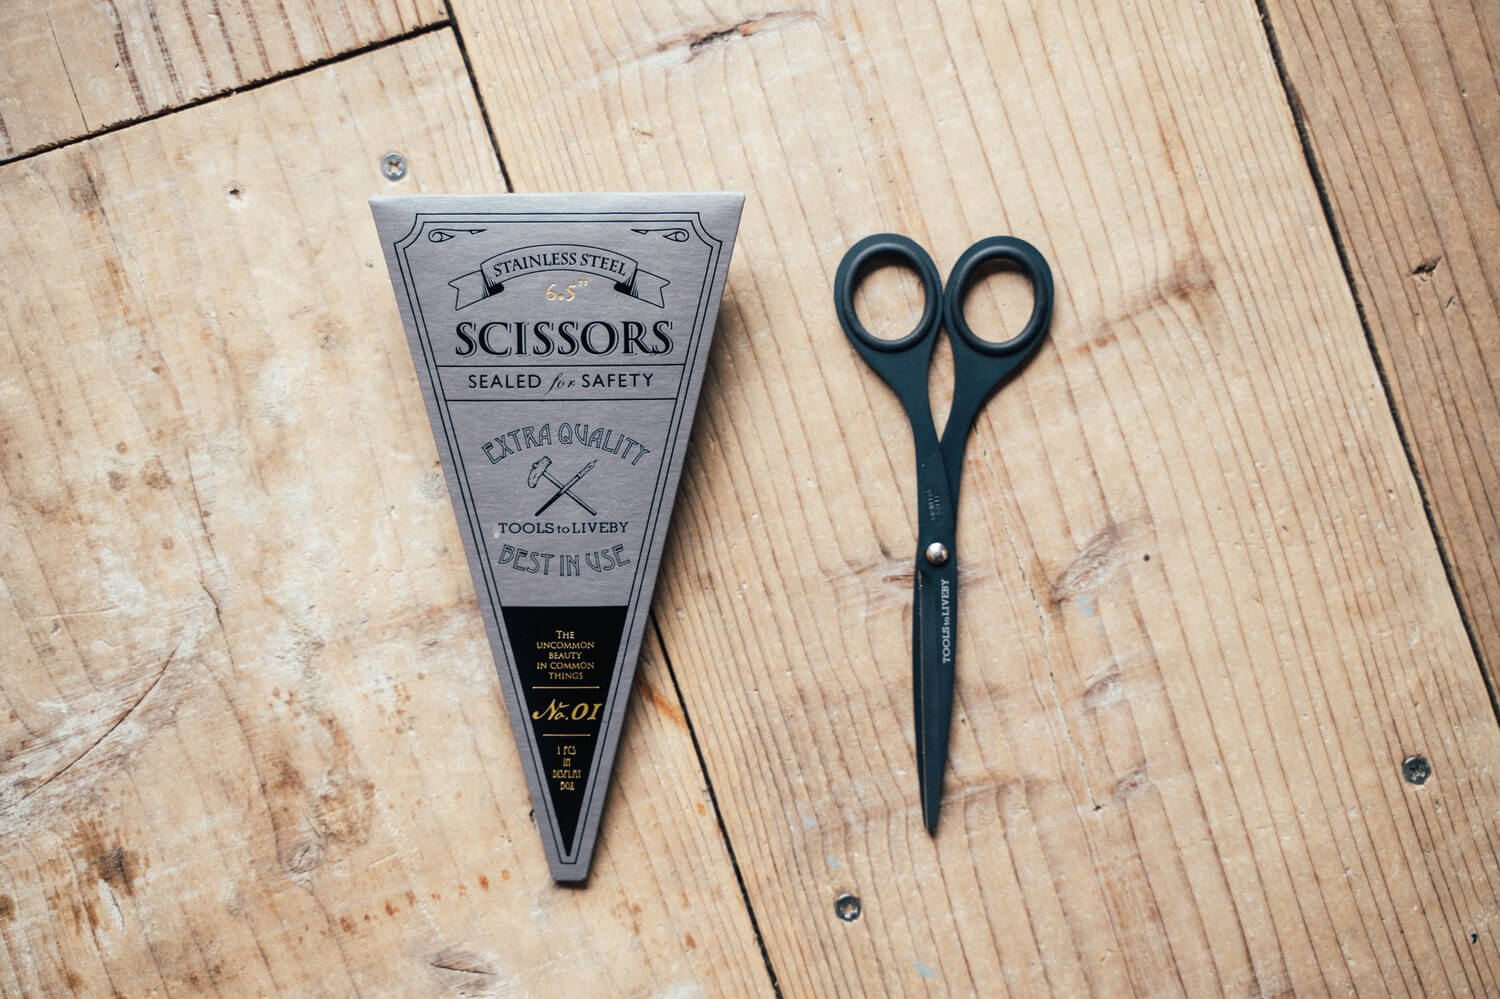 Tools to liveby scissors 0001